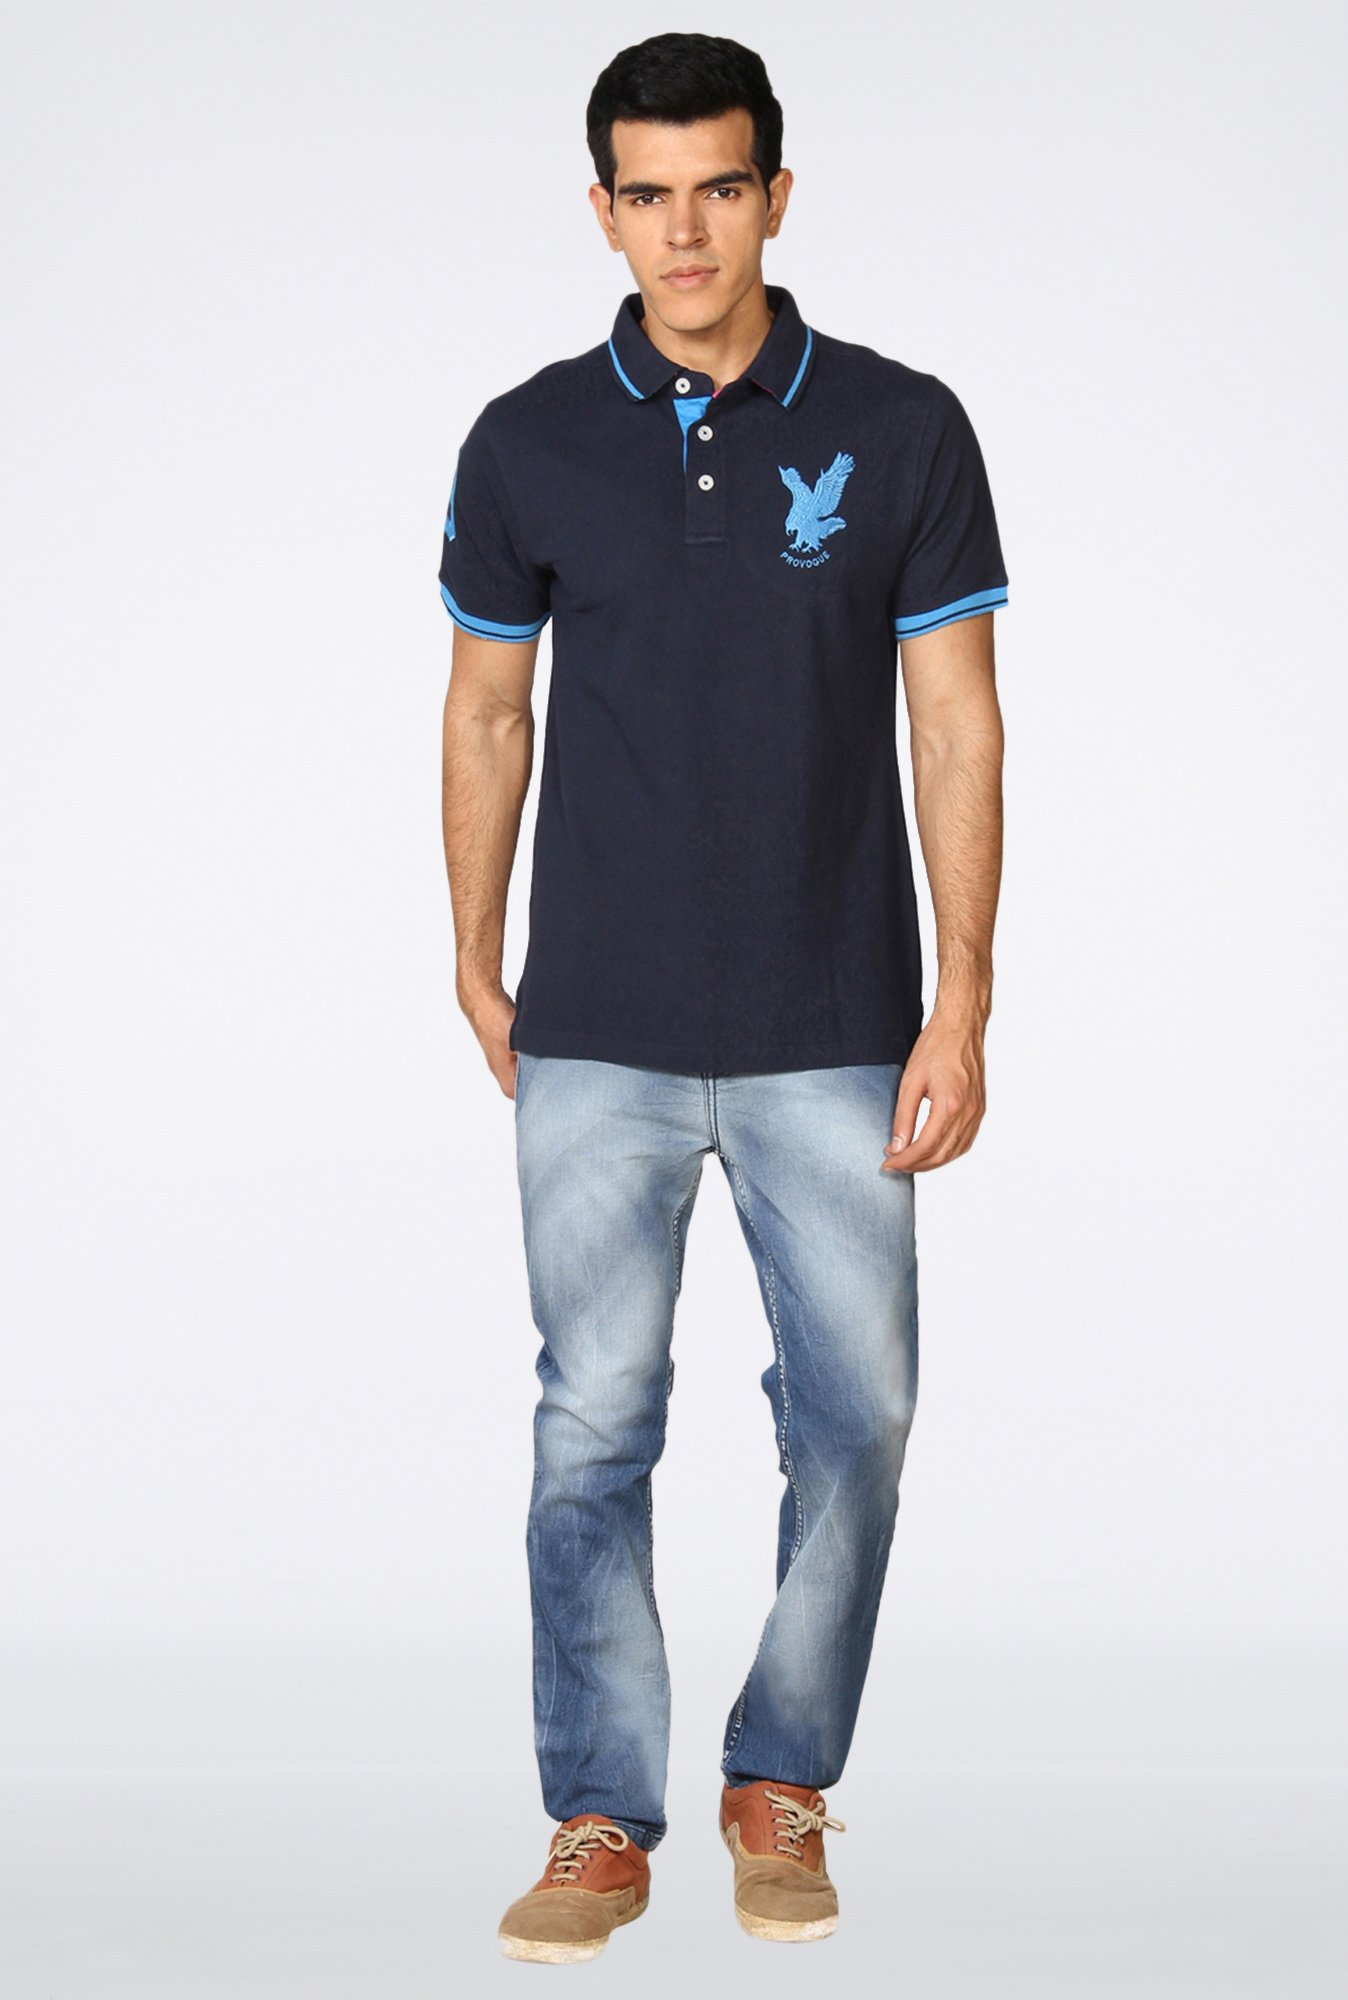 Provogue Navy Solid Polo T-Shirt